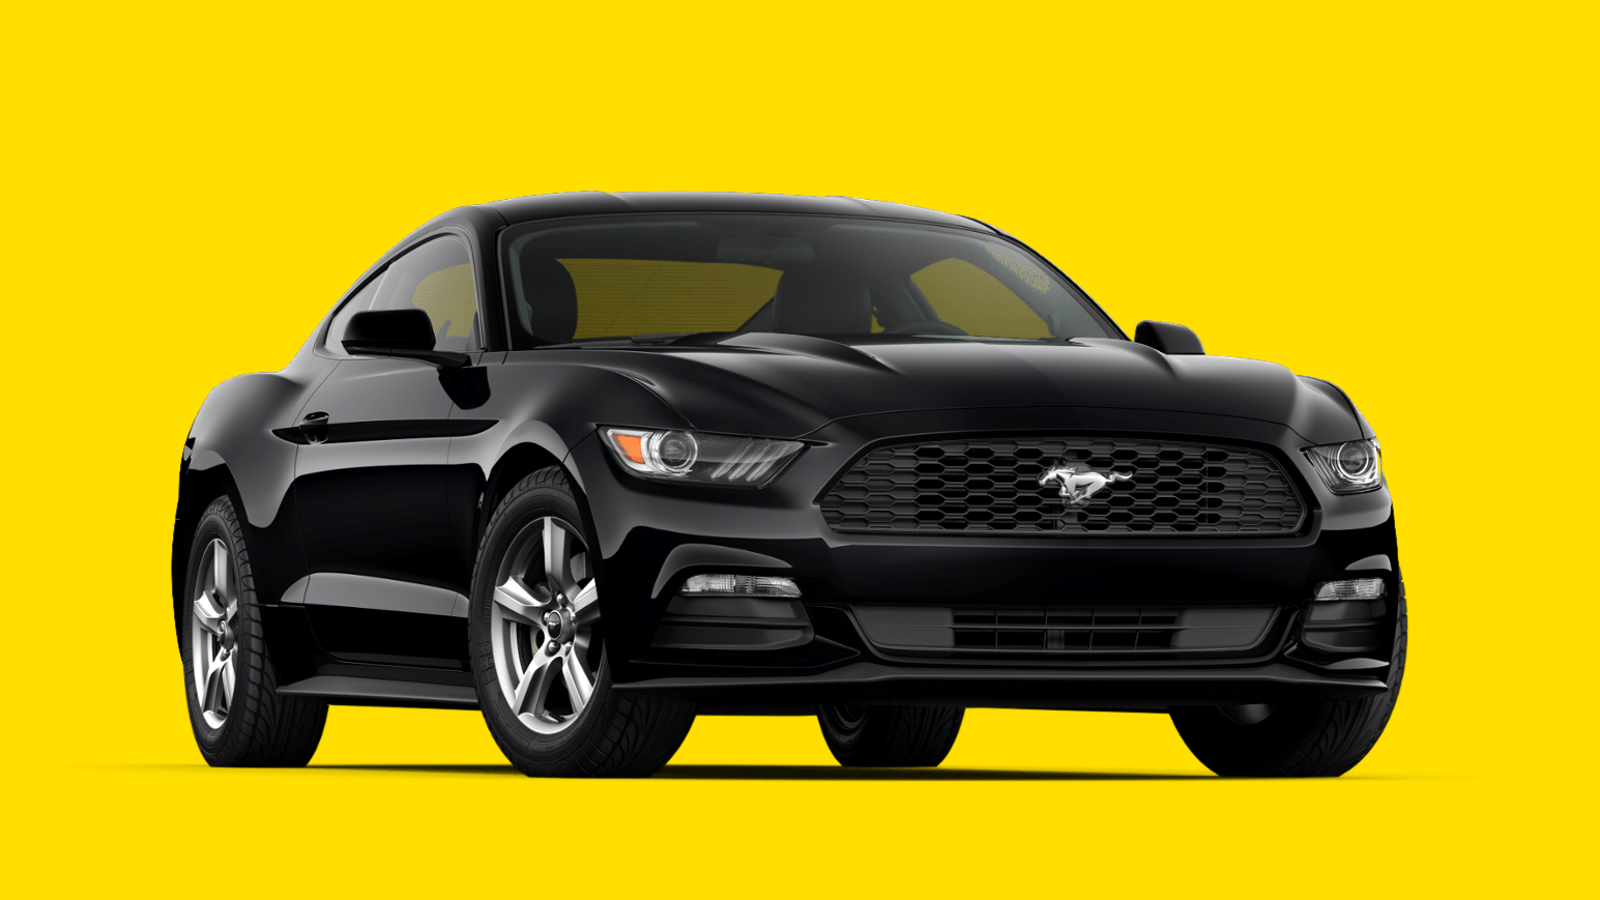 The V6 Ford Mustang Was The Underrated Everyman's Enthusiast Car